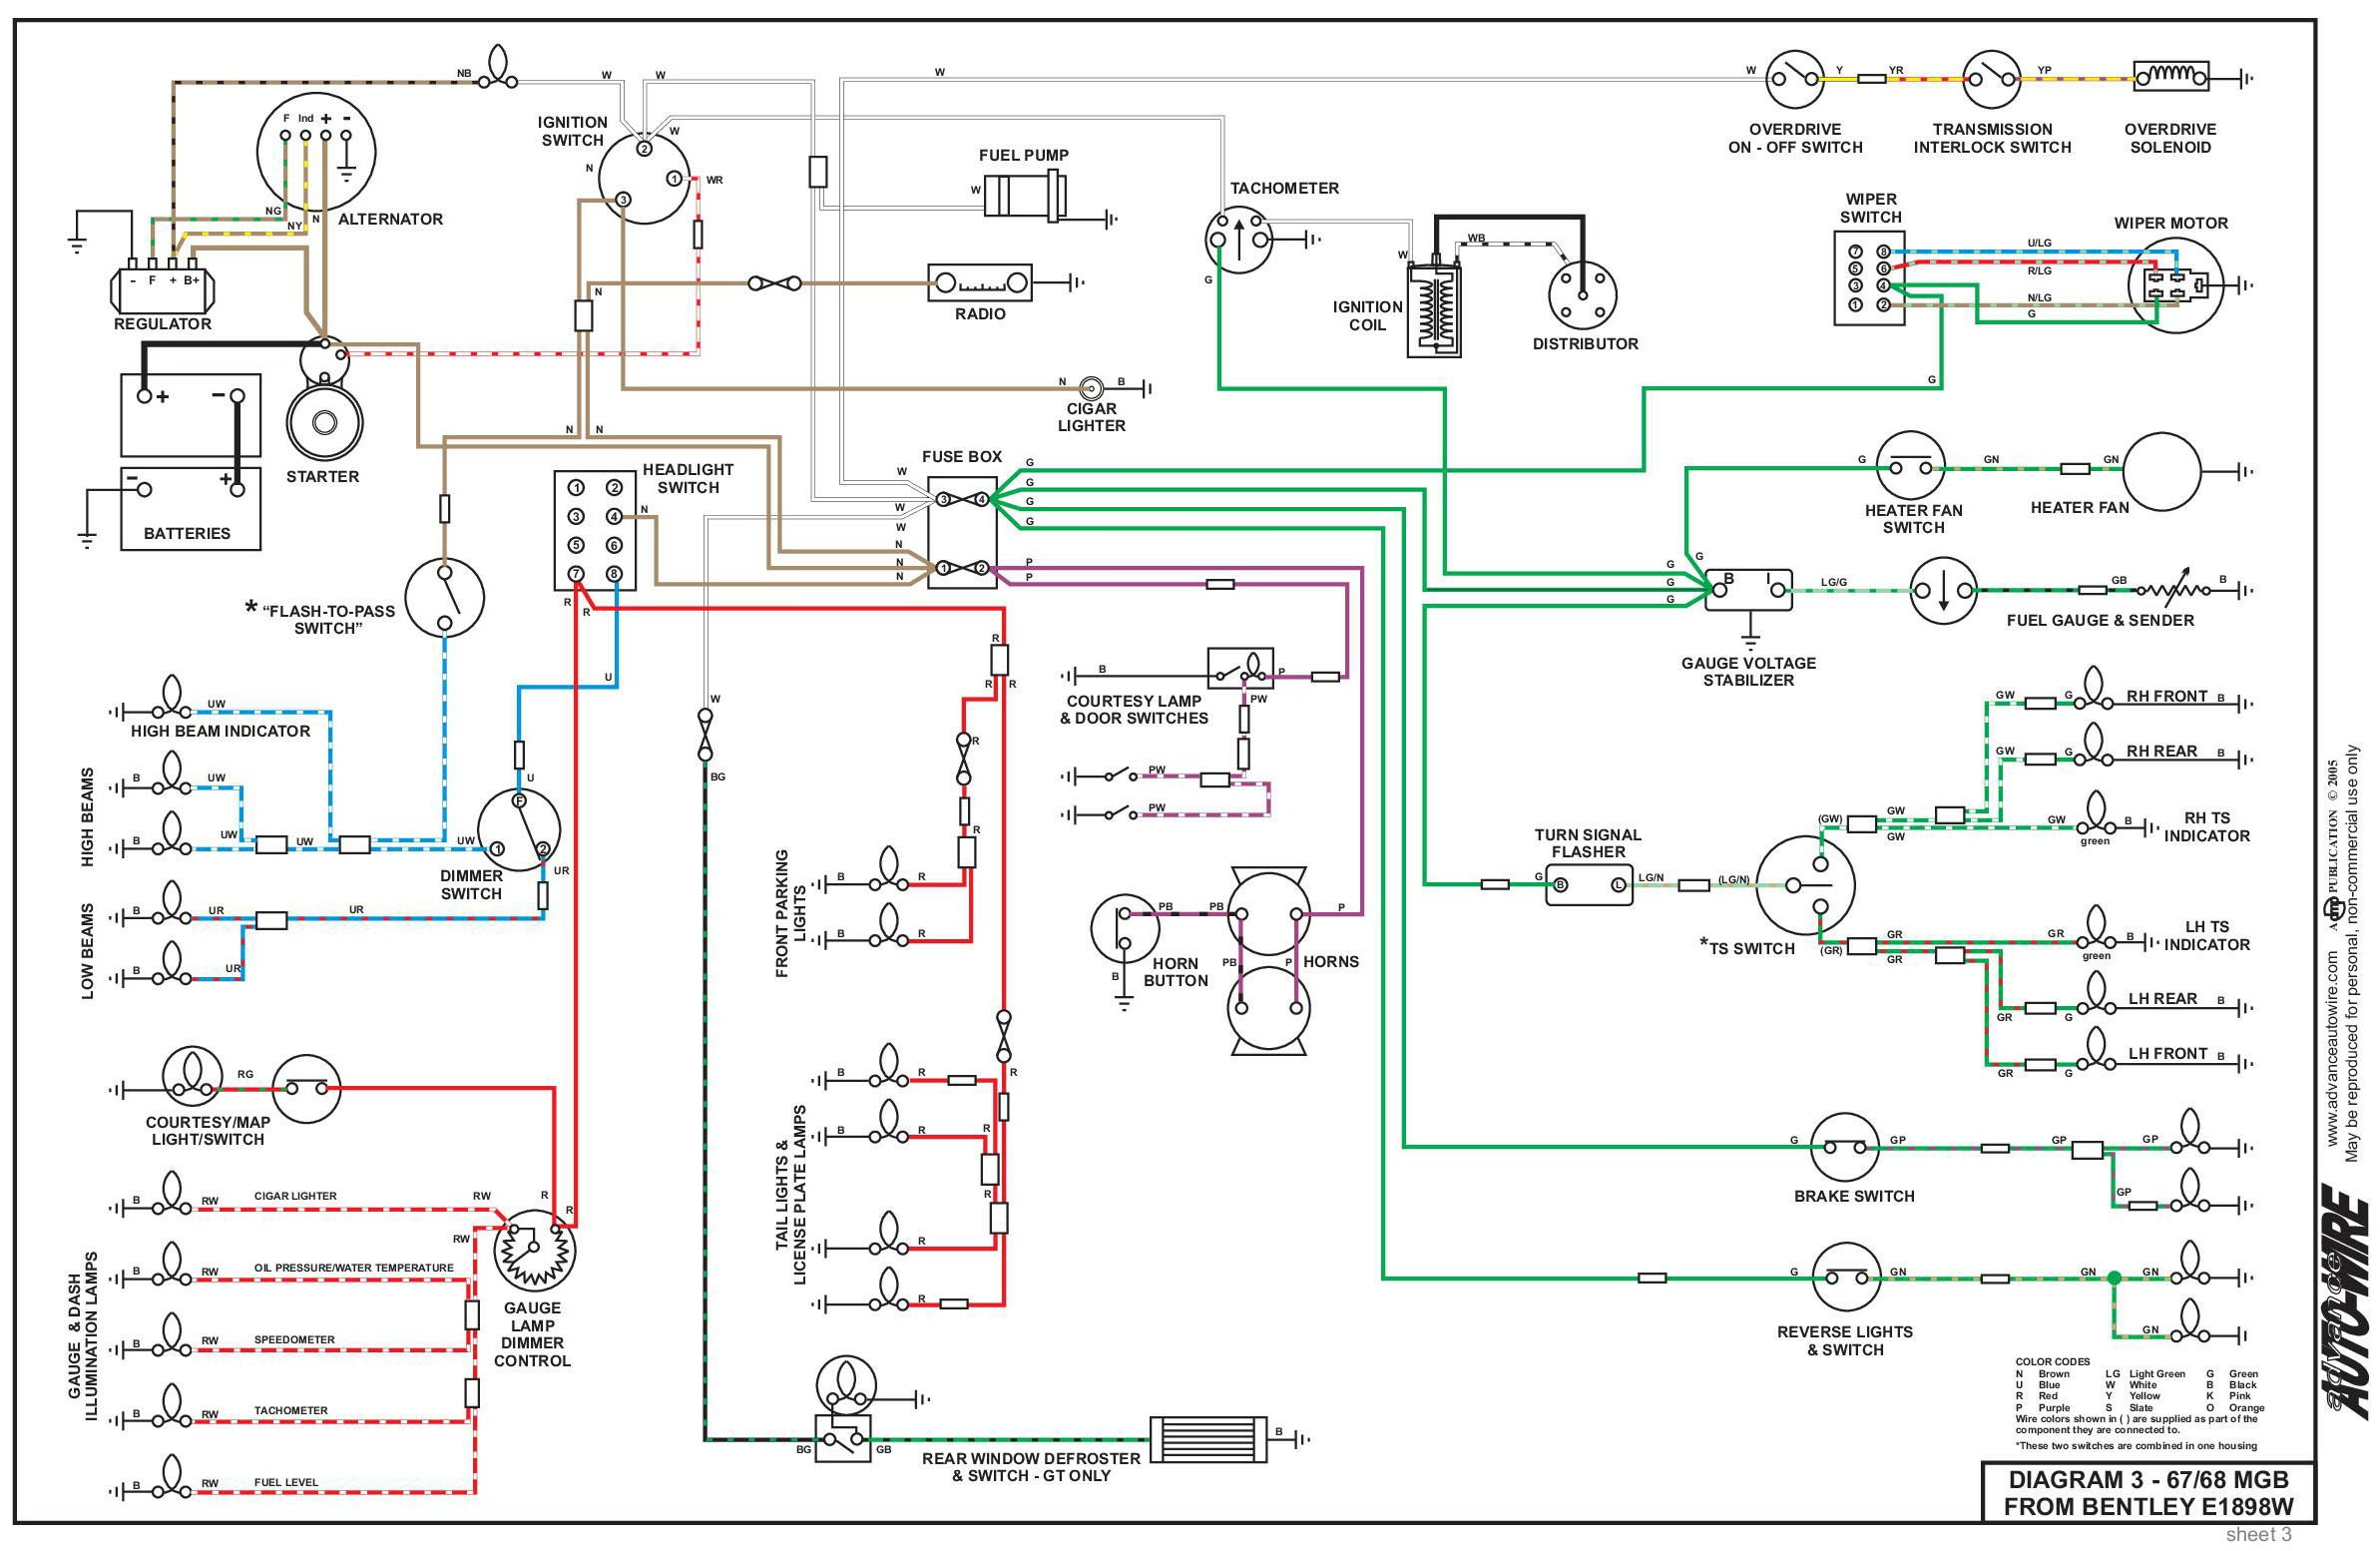 Wiring Diagram for 3 Prong Flasher Electrical System Of Wiring Diagram for 3 Prong Flasher